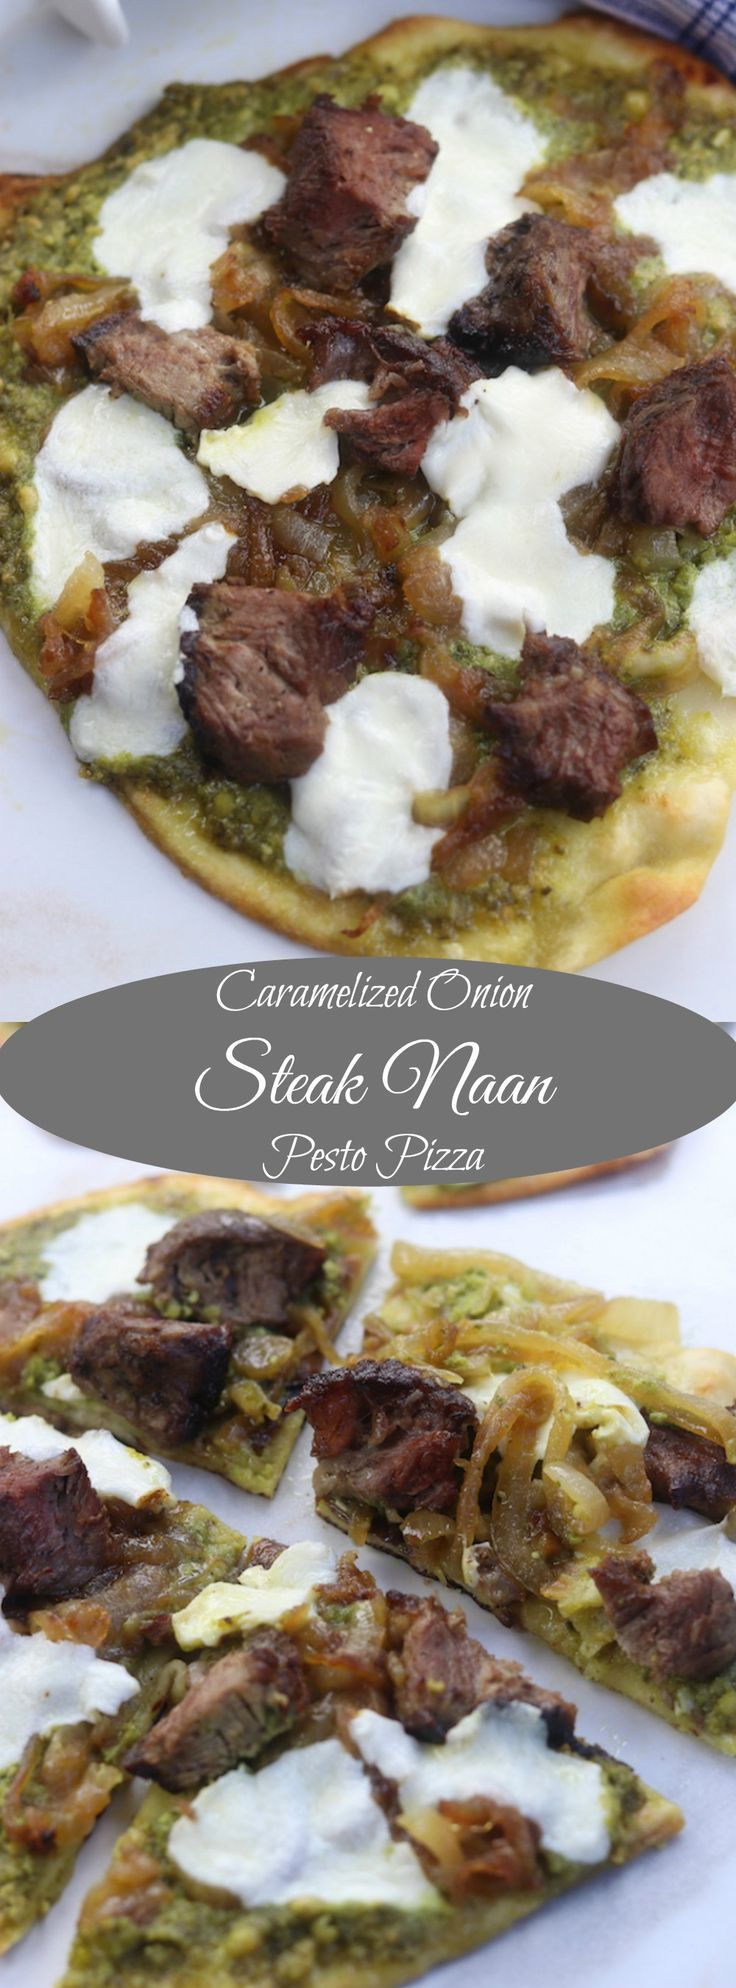 Caramelized Onion Steak Naan Pesto Pizza recipe- an easy and delicious meal for those who love steak and pizza. My family is hooked on these. http://www.thefedupfoodie.com